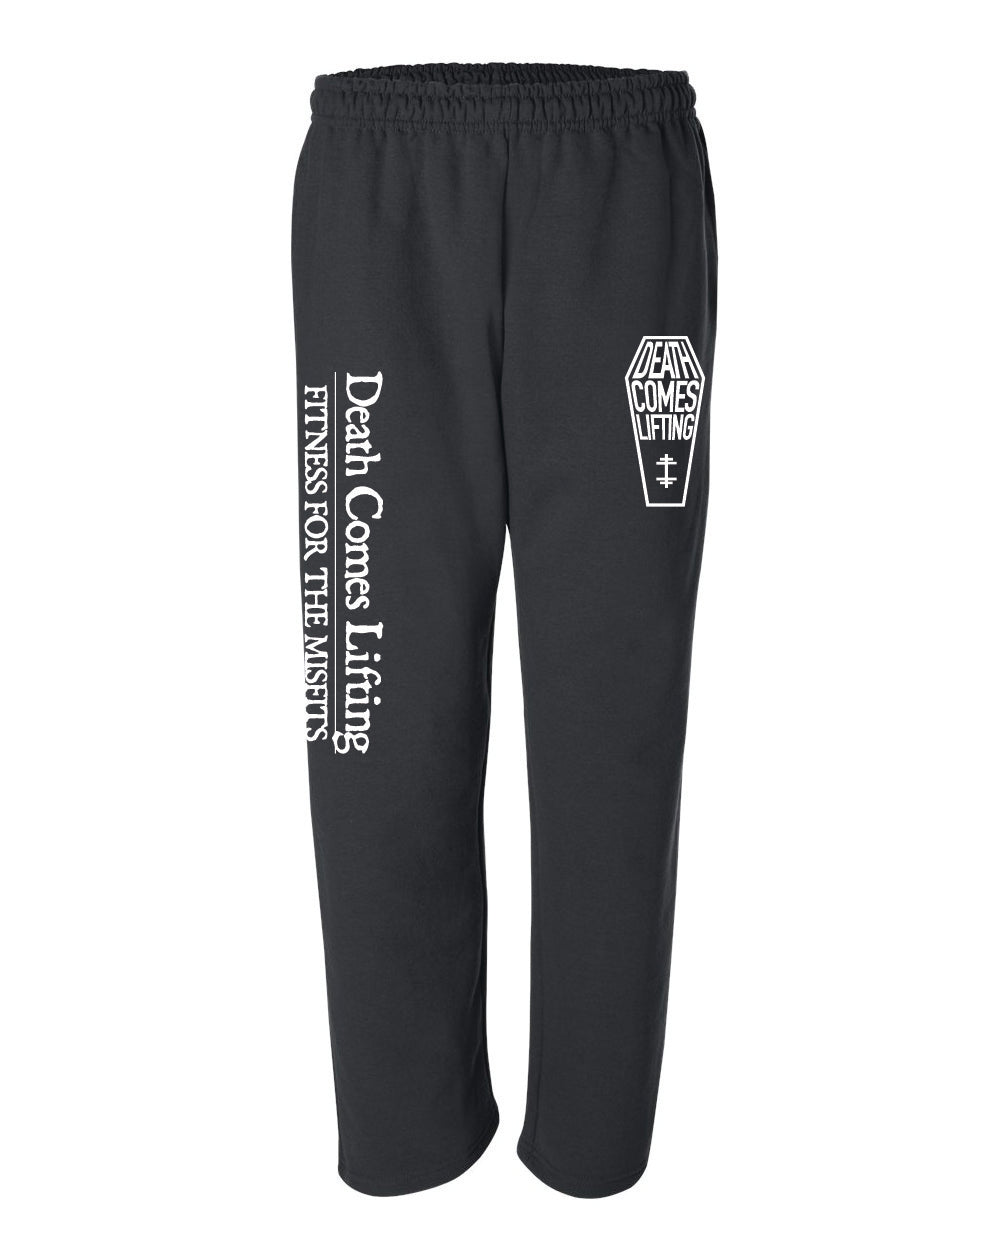 DEATHPANTS (Unisex Sweatpants)